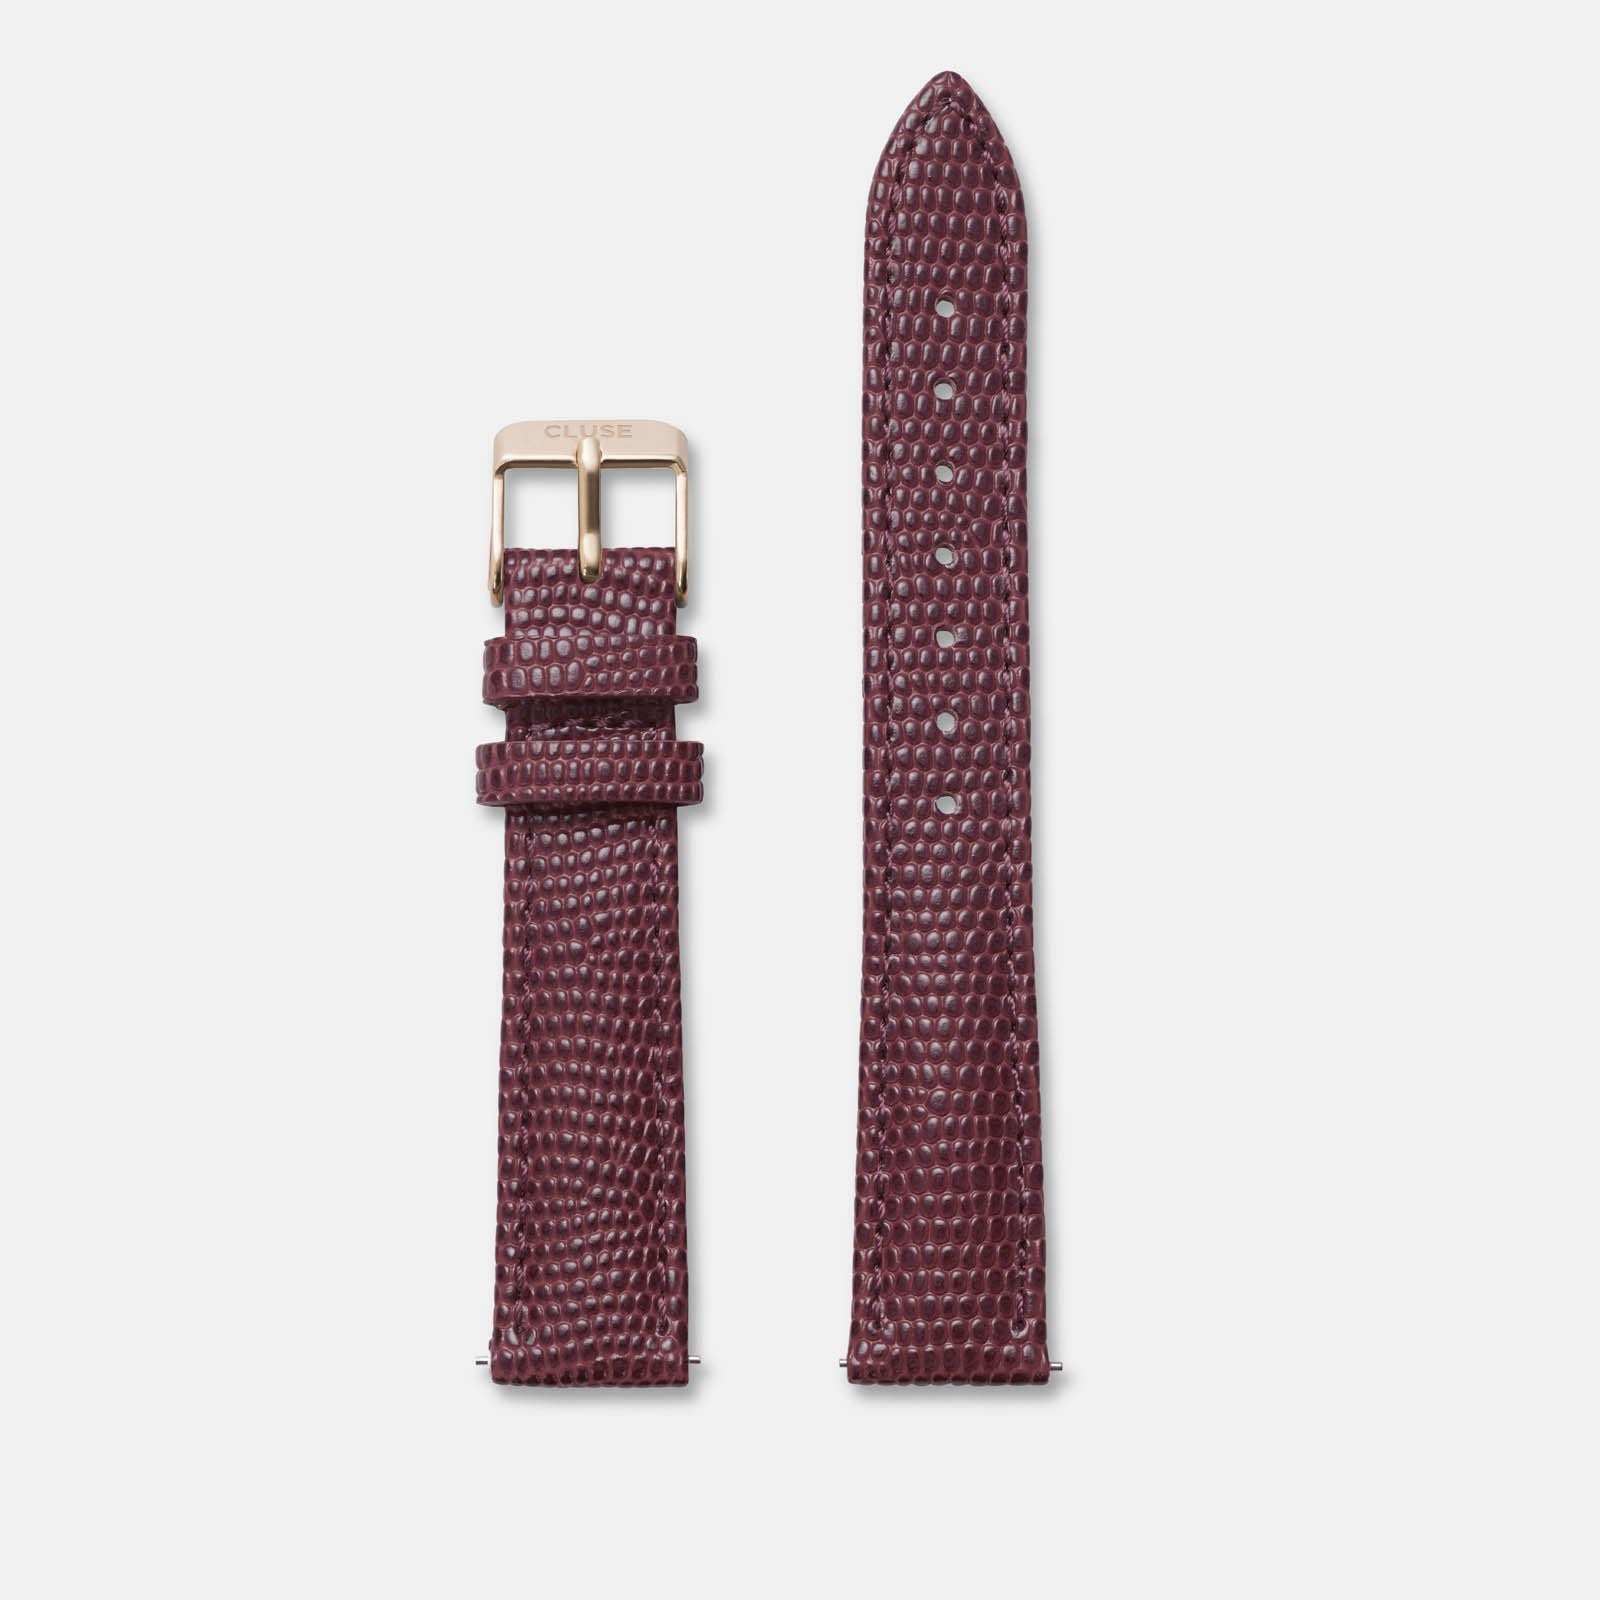 CLUSE 16 mm Strap Burgundy Lizard/Rose Gold CLS380 - strap